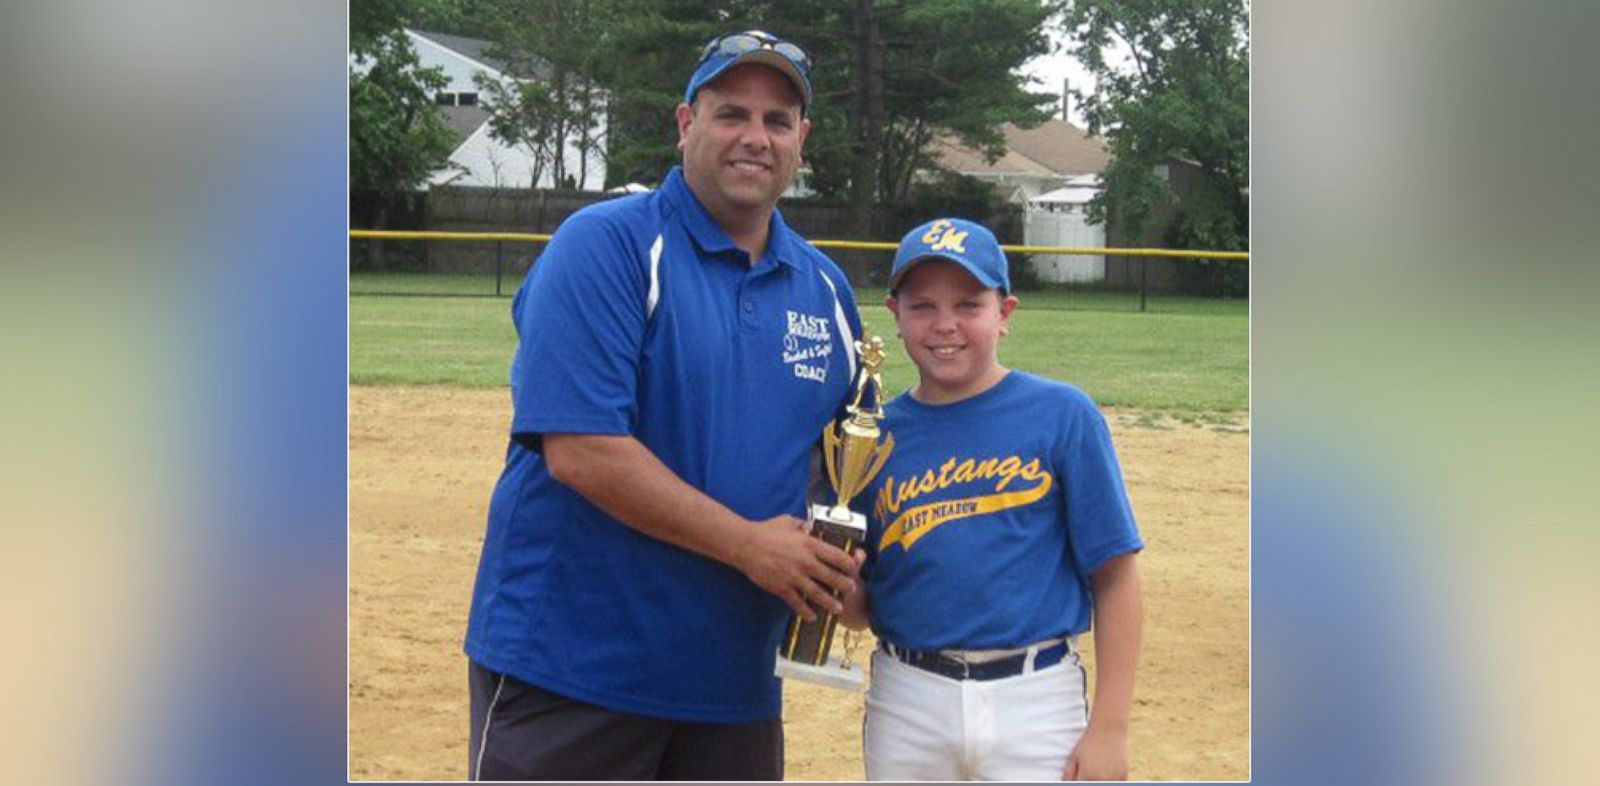 PHOTO: Little League coach John DeMasi, left, and his son Dominic DeMasi, right, received threatening letters from a parent after her son failed to make the travel team.